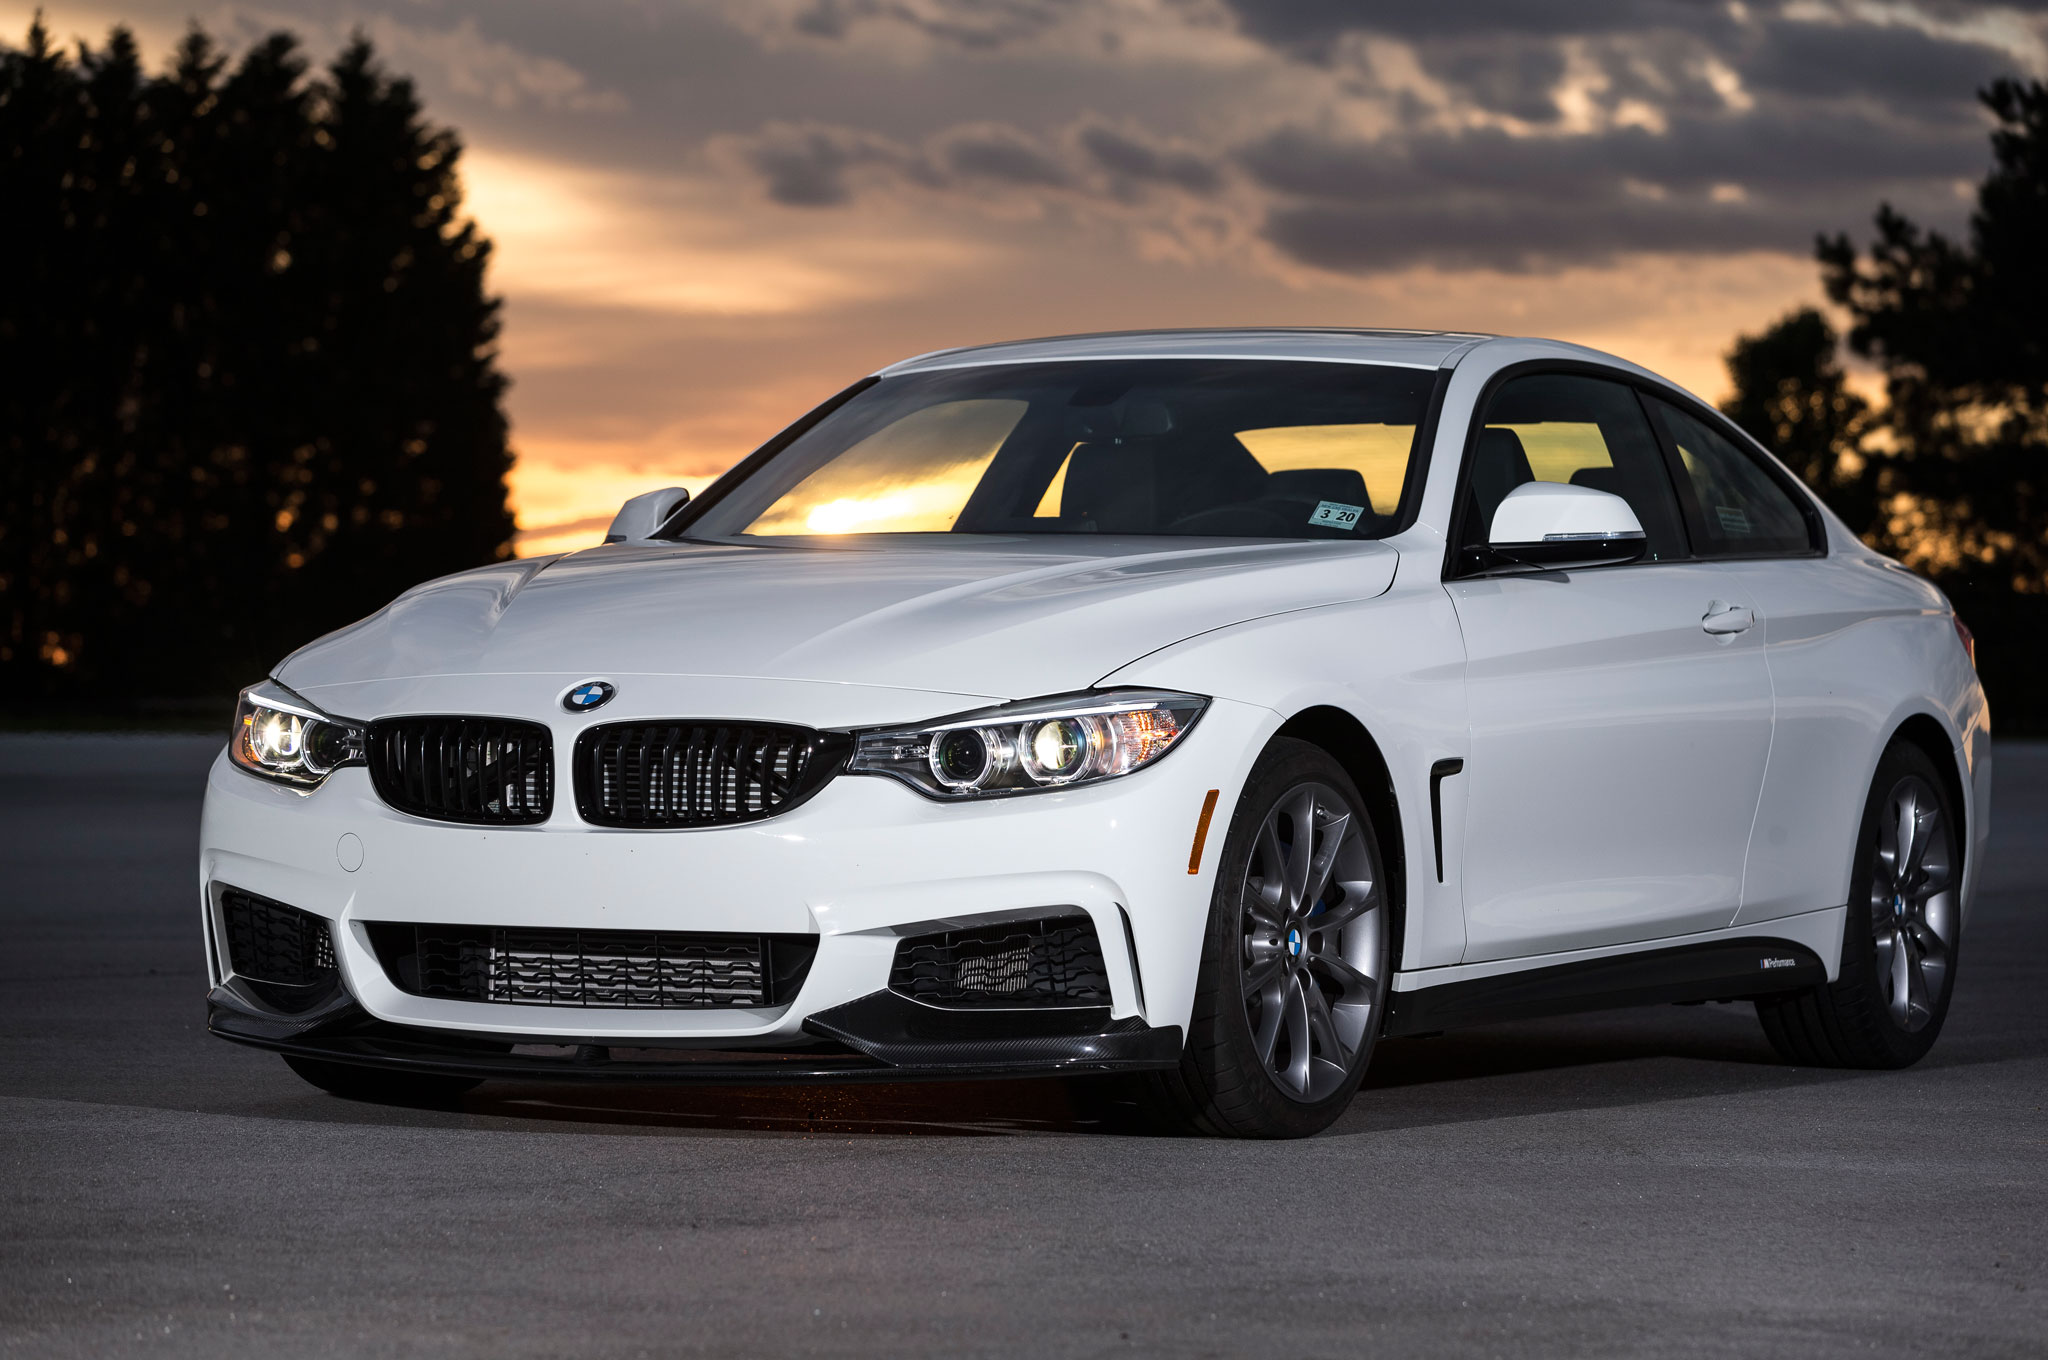 2016 BMW 435i ZHP Coupe Edition Gains 35 HP, Upgraded Chassis